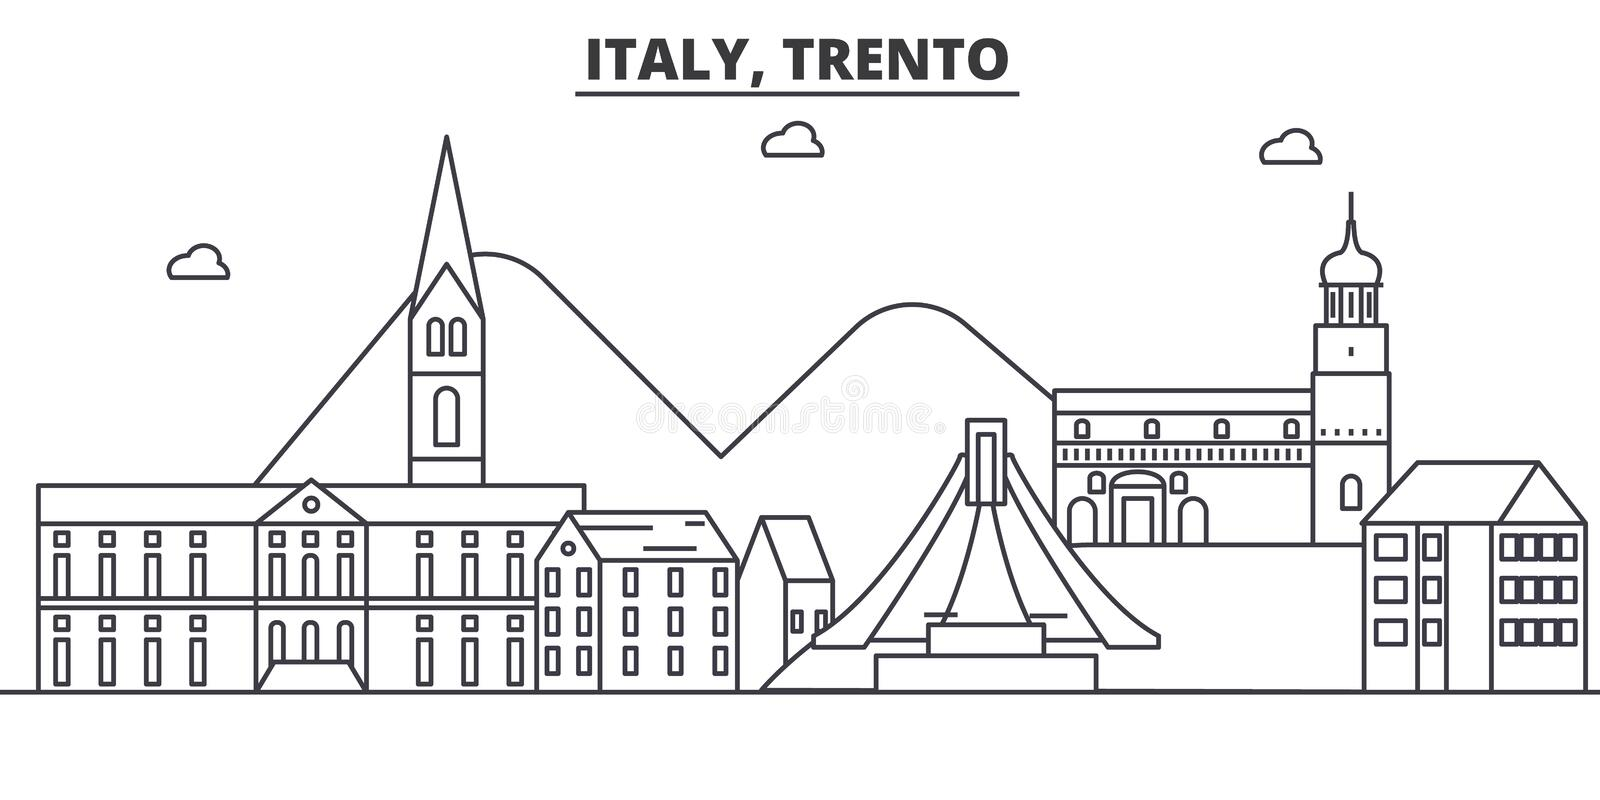 Italy, Trento architecture line skyline illustration. Linear vector cityscape with famous landmarks, city sights, design. Icons. Editable strokes vector illustration